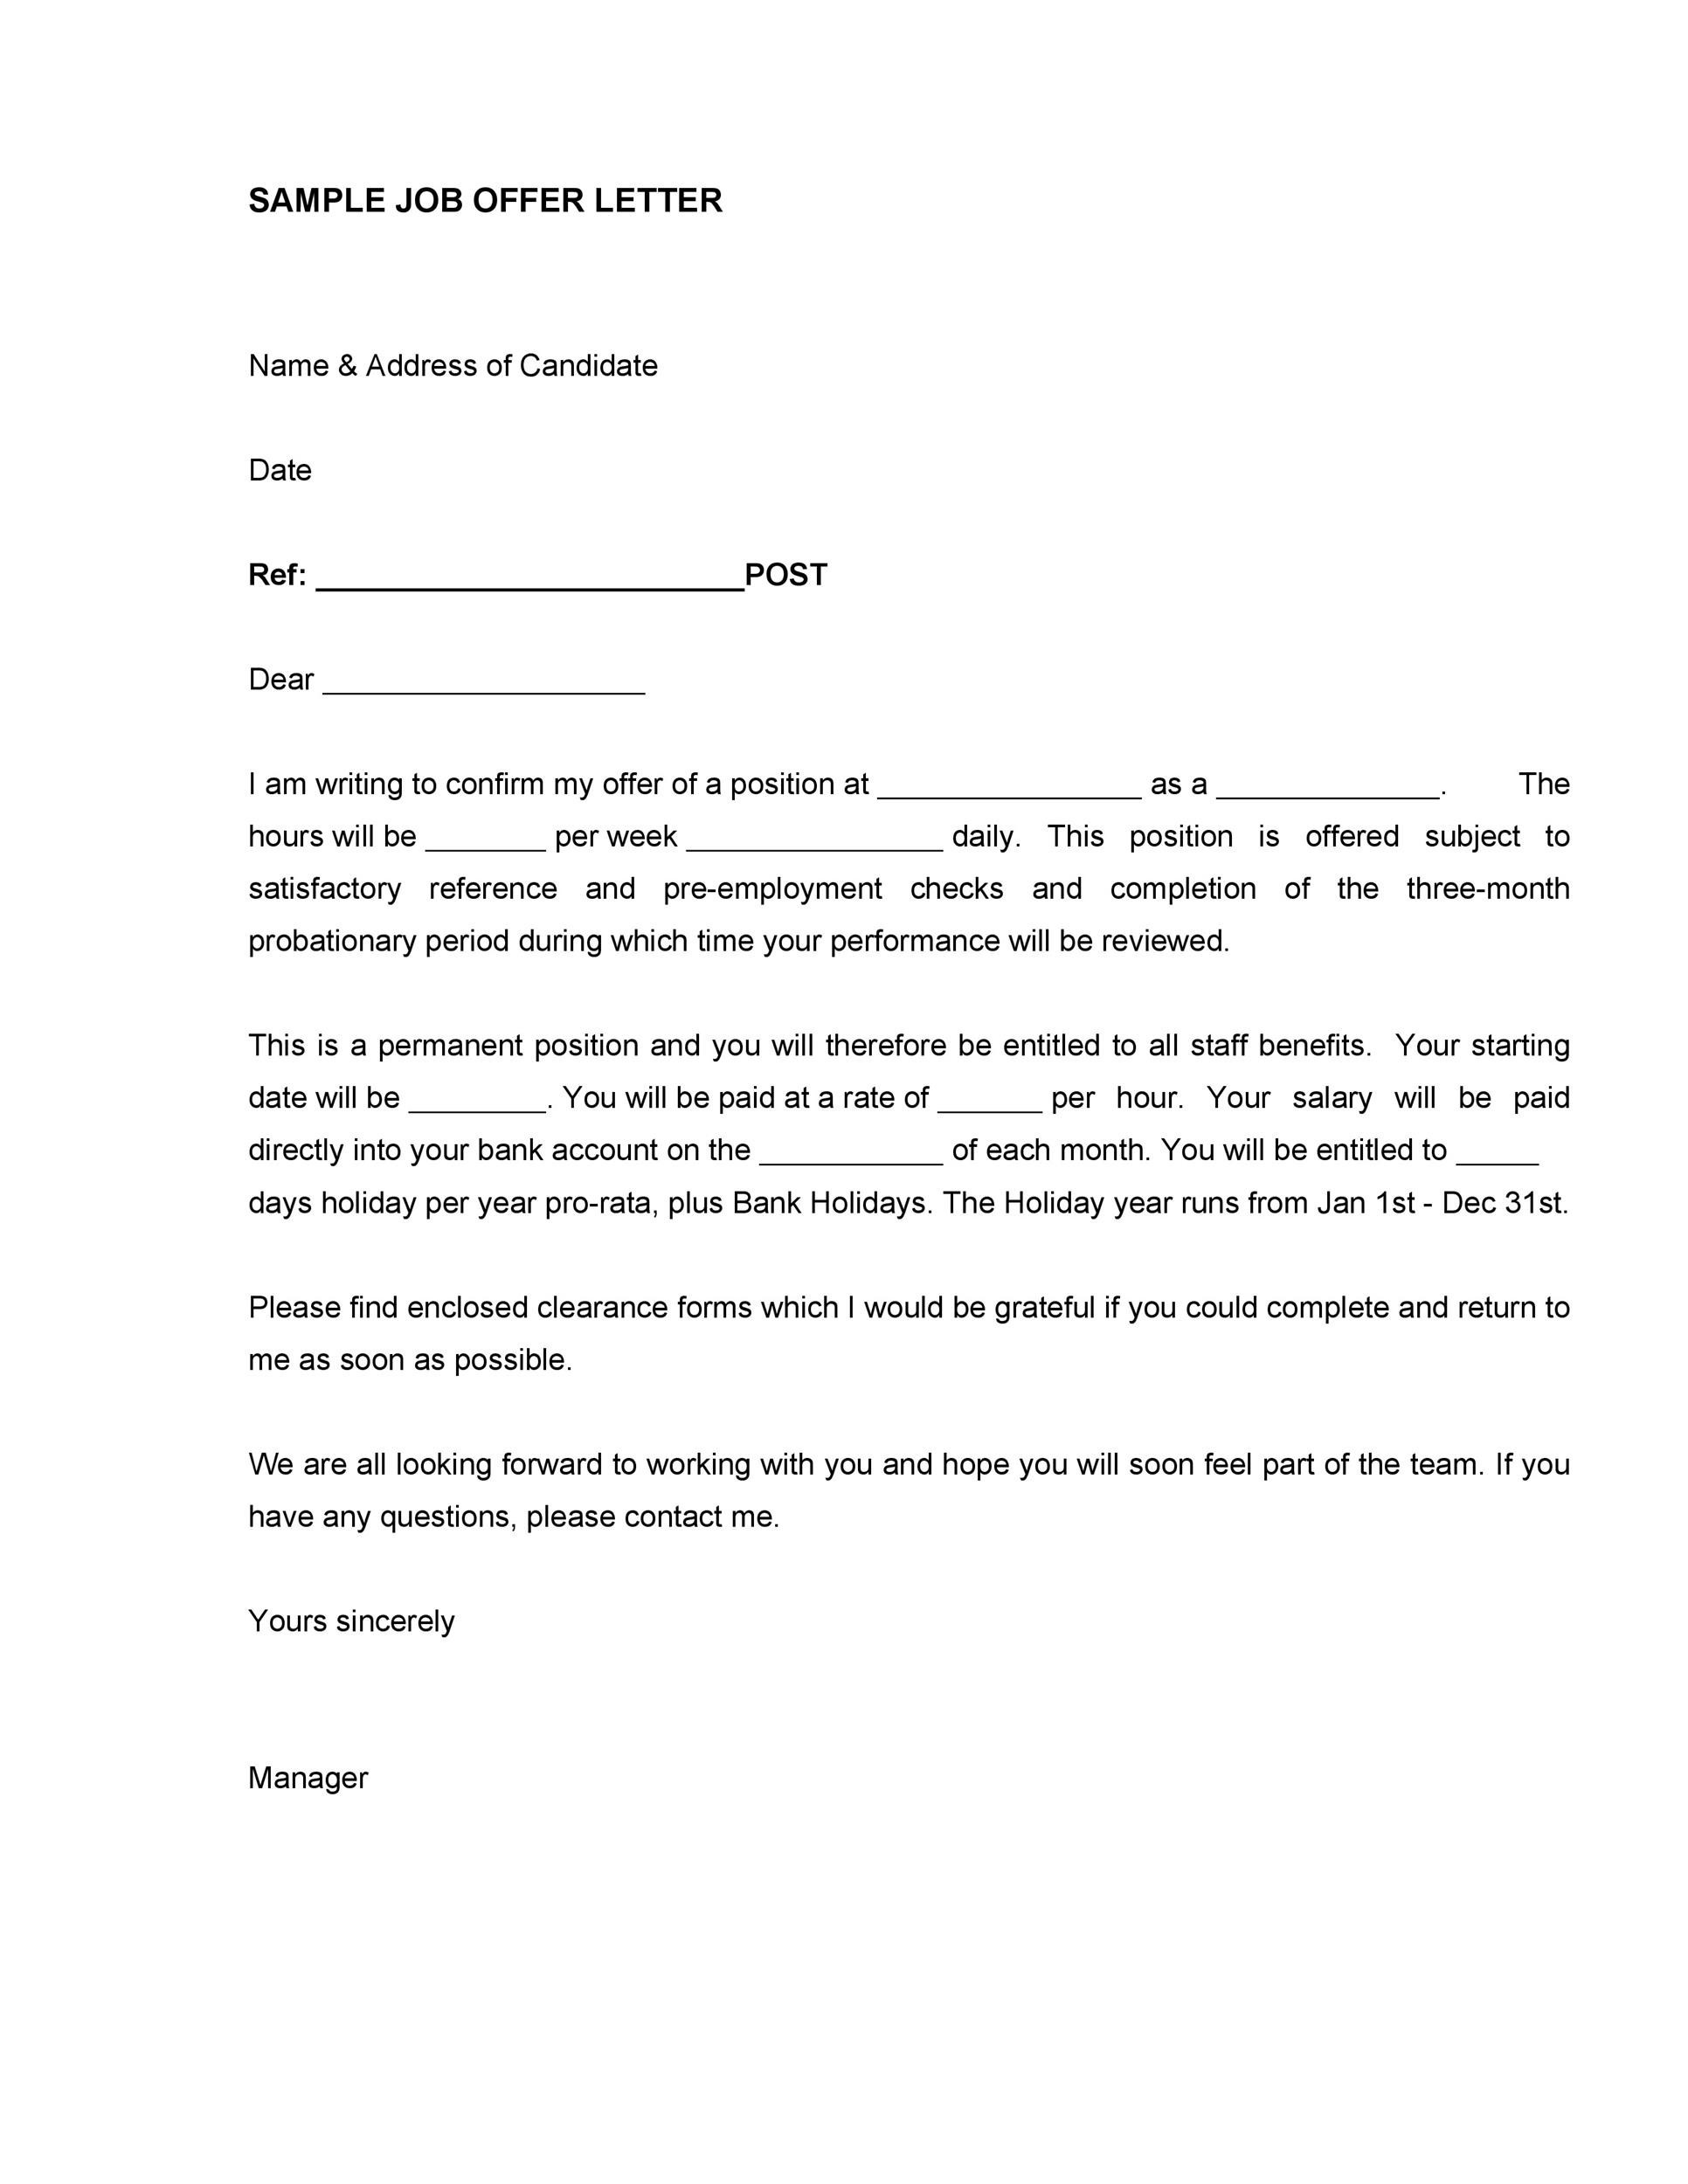 fantastic offer letter templates employment counter offer job offer letter 23